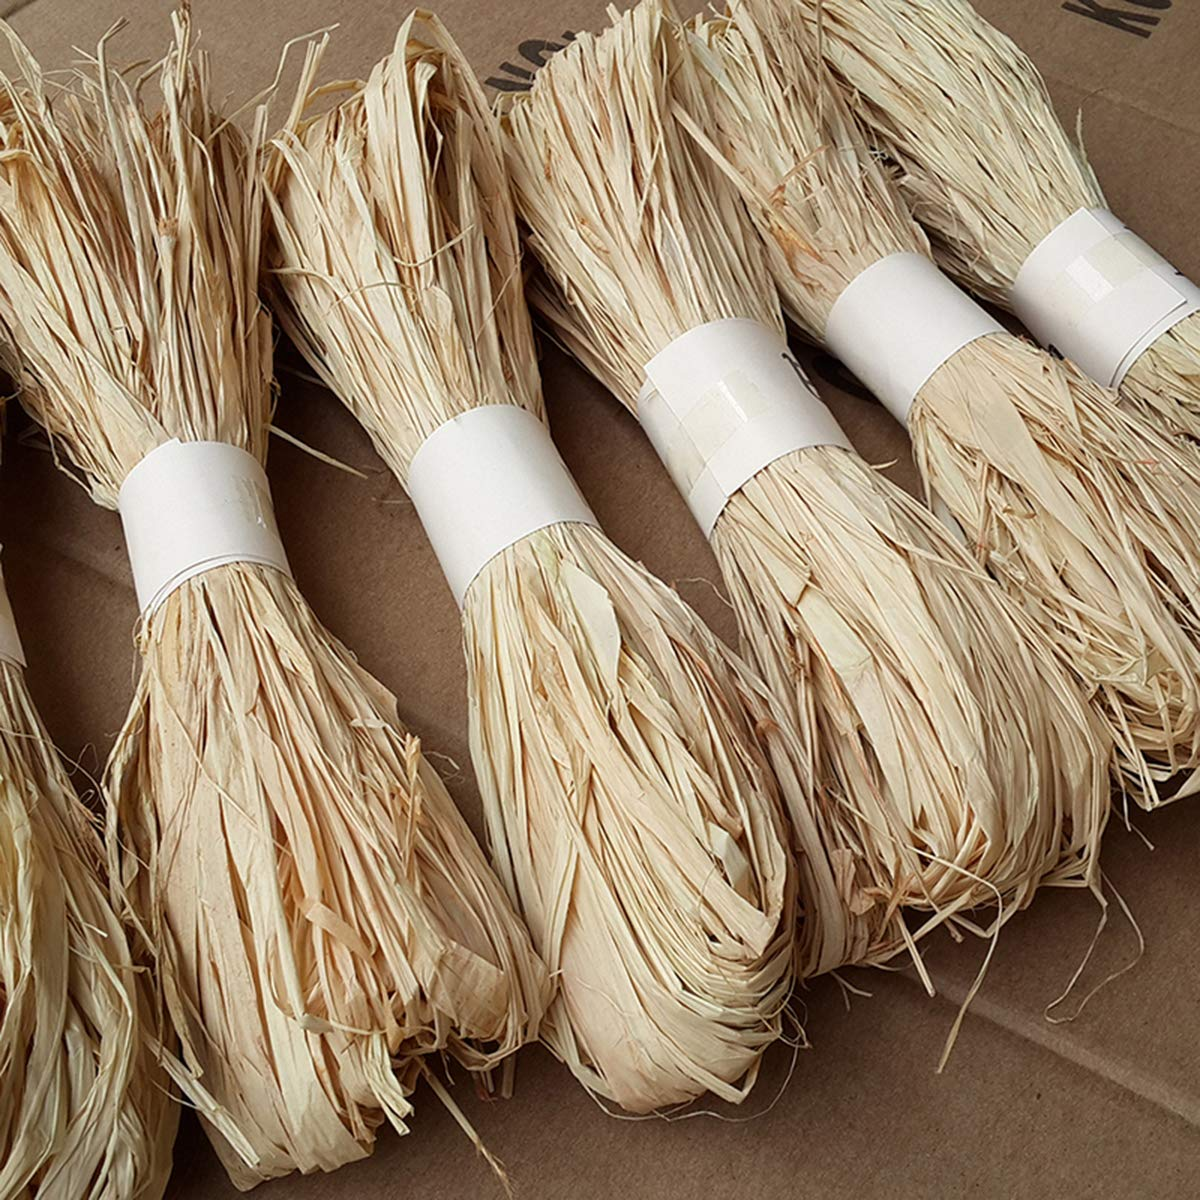 Natural Raffia Grass Bundle Dry Straw Paper Gift Wrap Candy Box Wedding Party Decor Invitation Gift Card Packing Rope Flower Wraping Rustic Decor DIY Crafts Supplies (6 Rolls) by Lolares